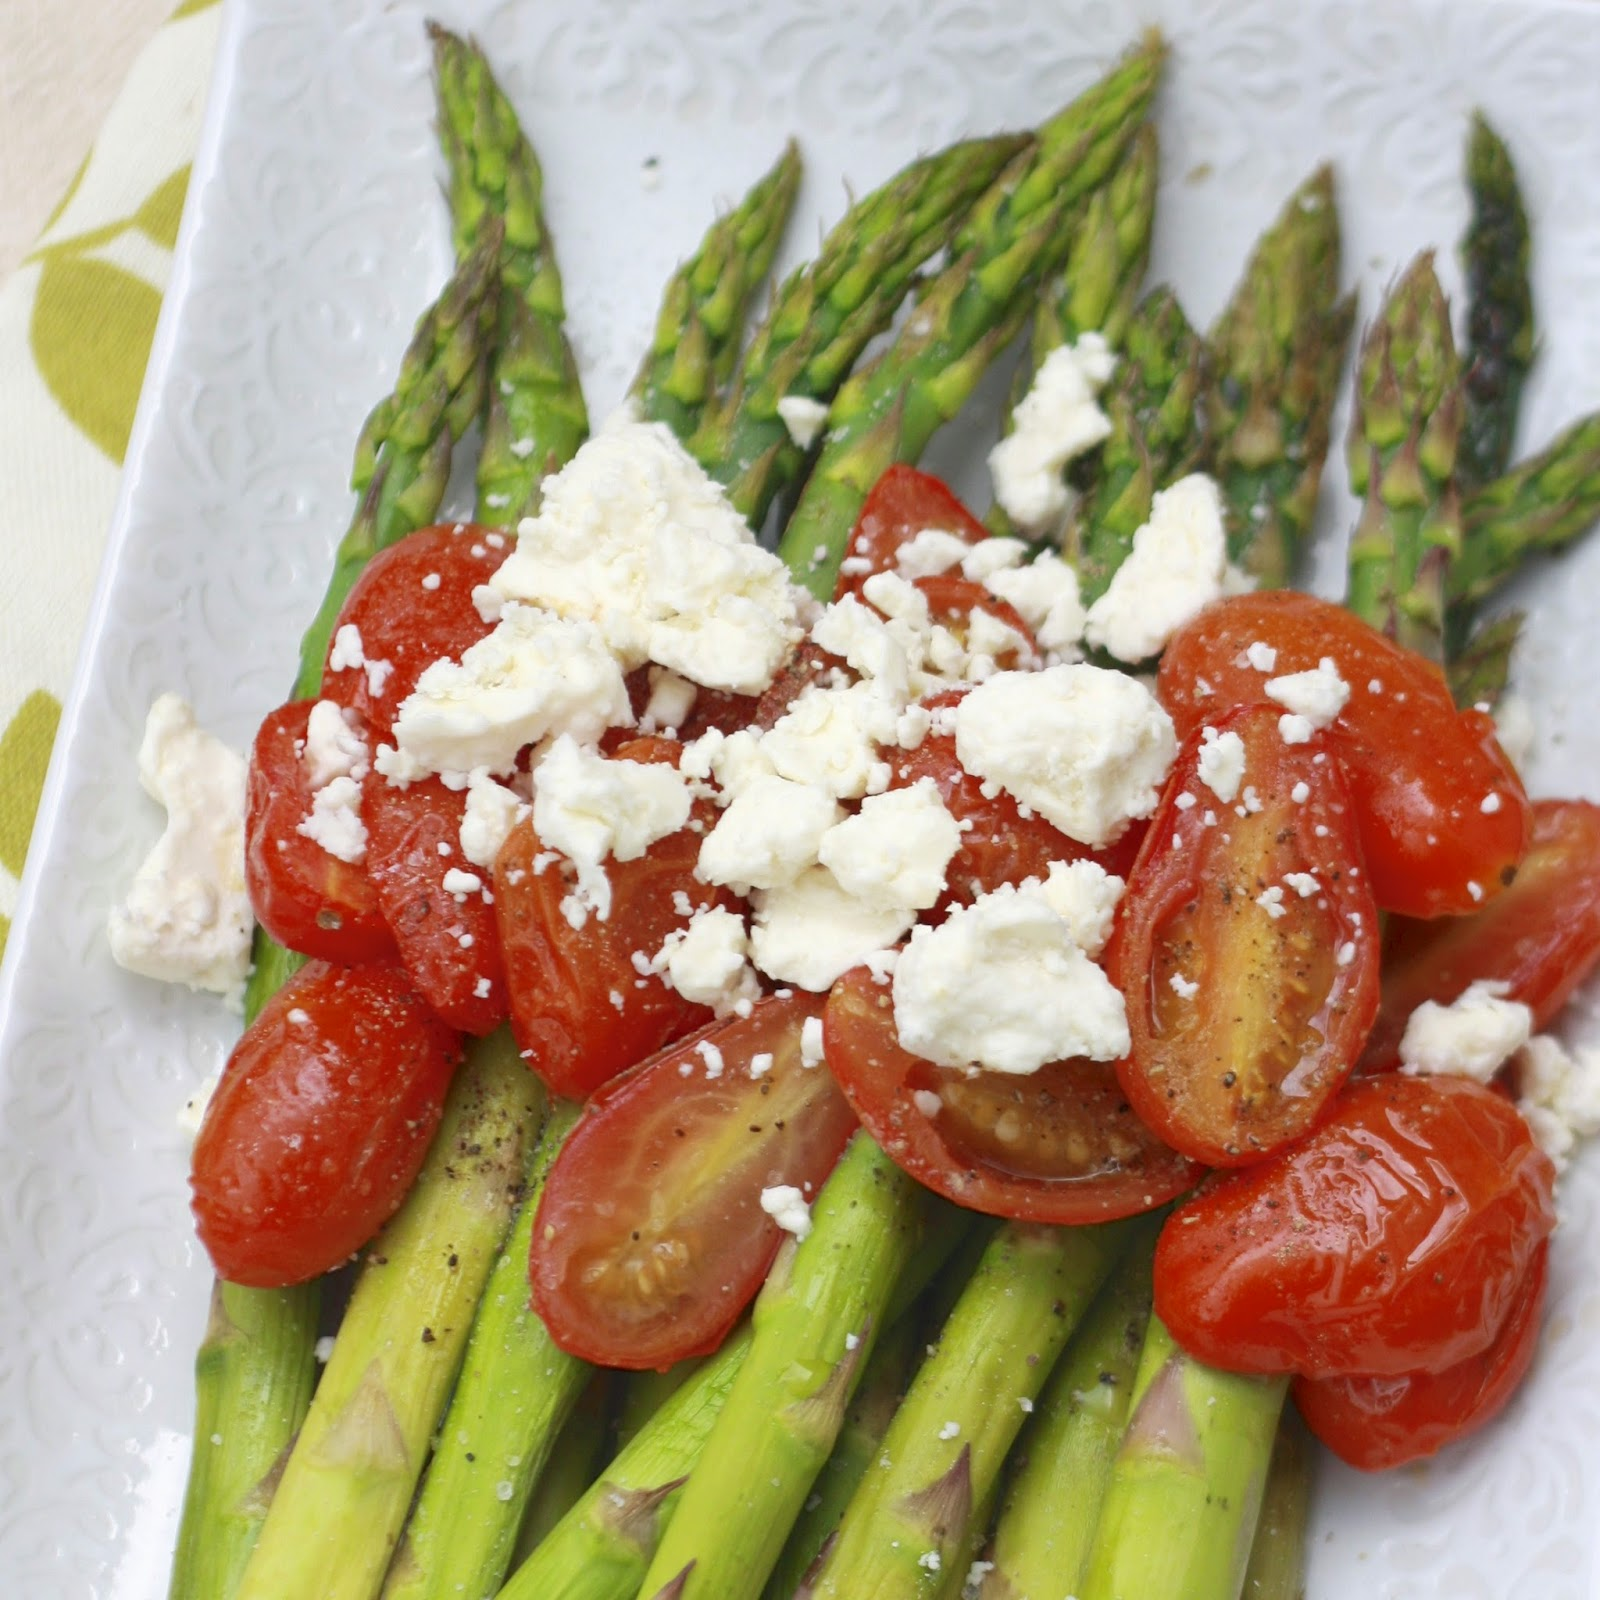 Asparagus and Tomatoes with Feta | The Sweets Life